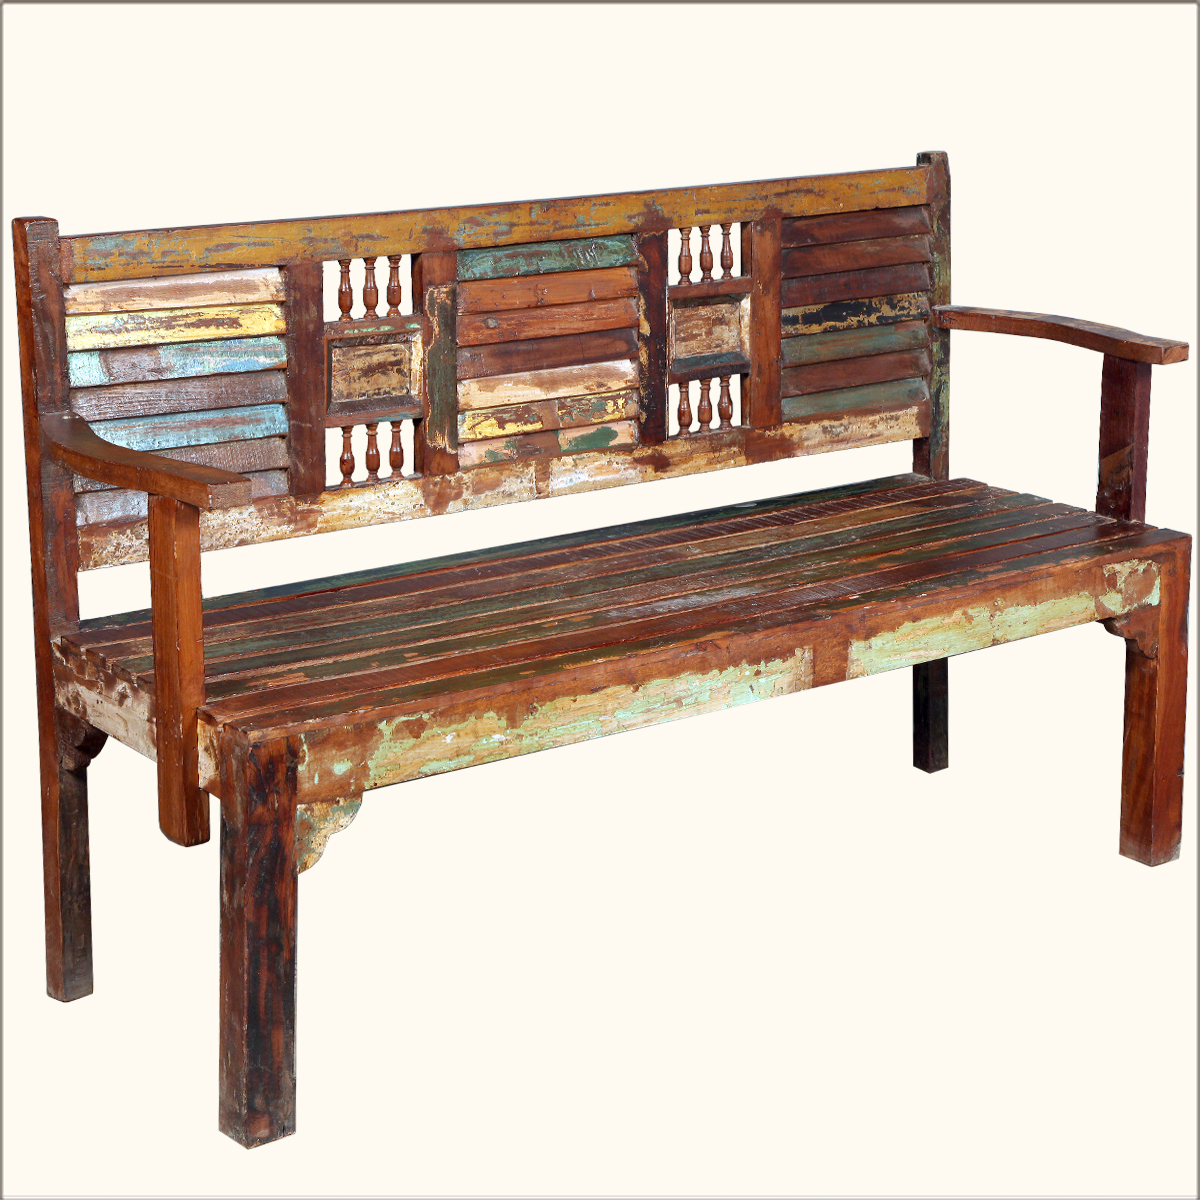 62 reclaimed wood rustic hand carved arms bench indoor. Black Bedroom Furniture Sets. Home Design Ideas